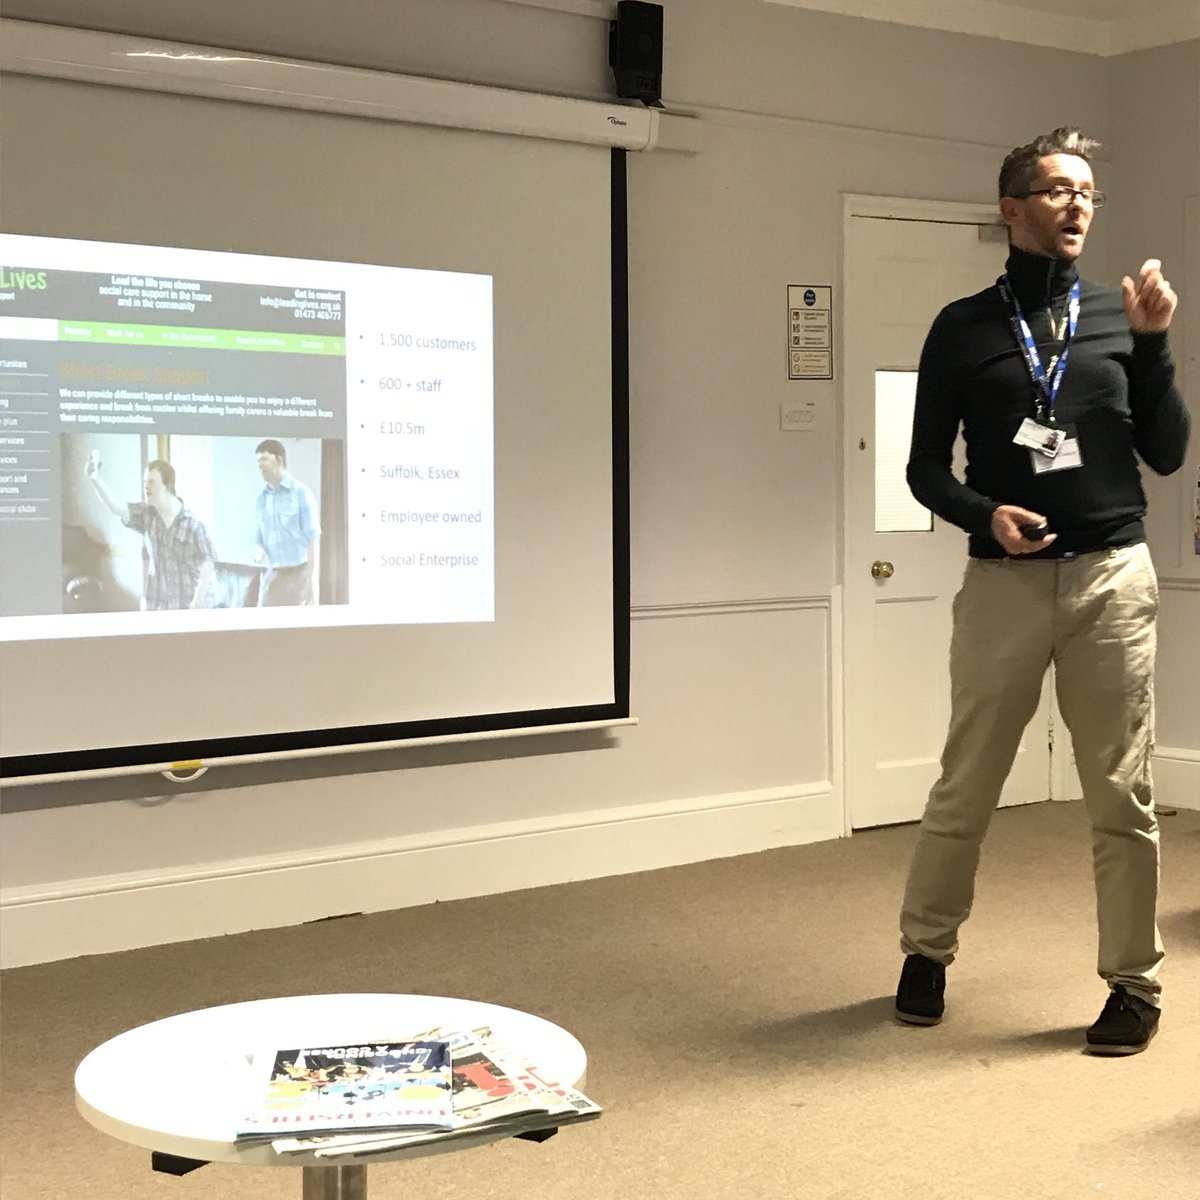 Thank you to Boo Dendy for a fabulous employer-led careers talk we truly enjoyed having you here @IpswichHigh @IHS6thForm from @LeadingLives #informed #inspired #students<br>http://pic.twitter.com/Ulozia4yT1